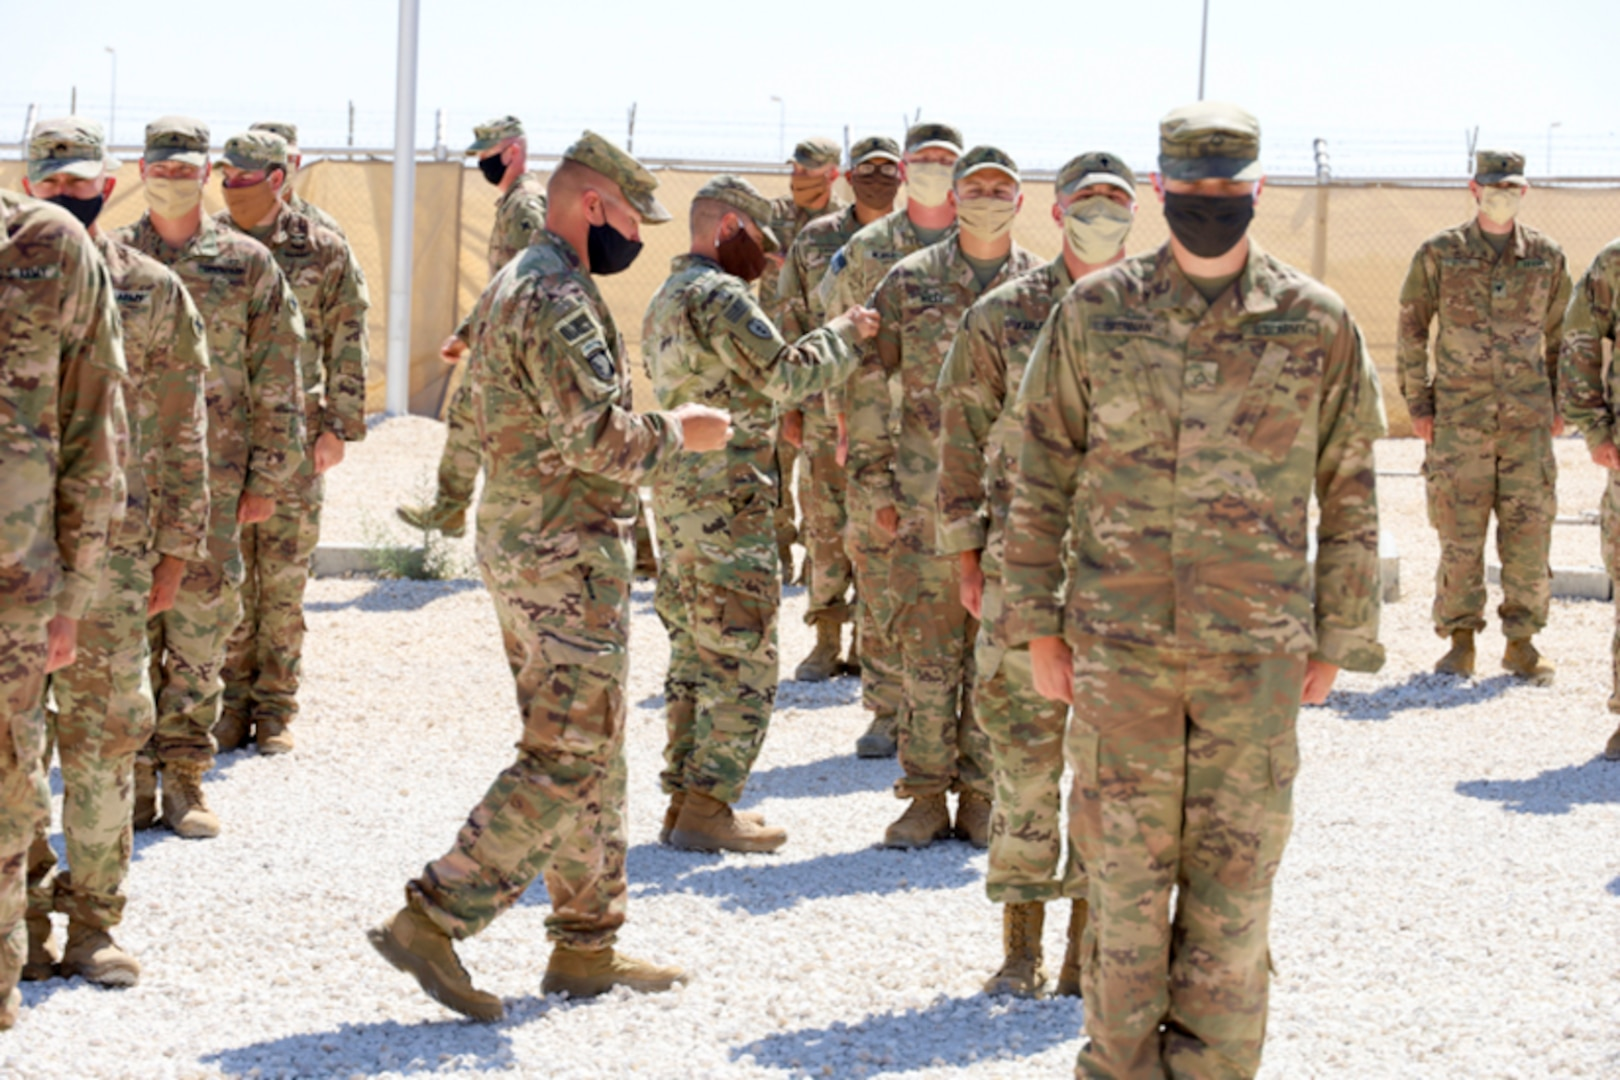 Senior non-commissioned officers with Headquarters and Headquarters Company, 2nd Battalion, 130th Infantry Regiment, based in Marion, Illinois, present the Soldiers with combat patches.